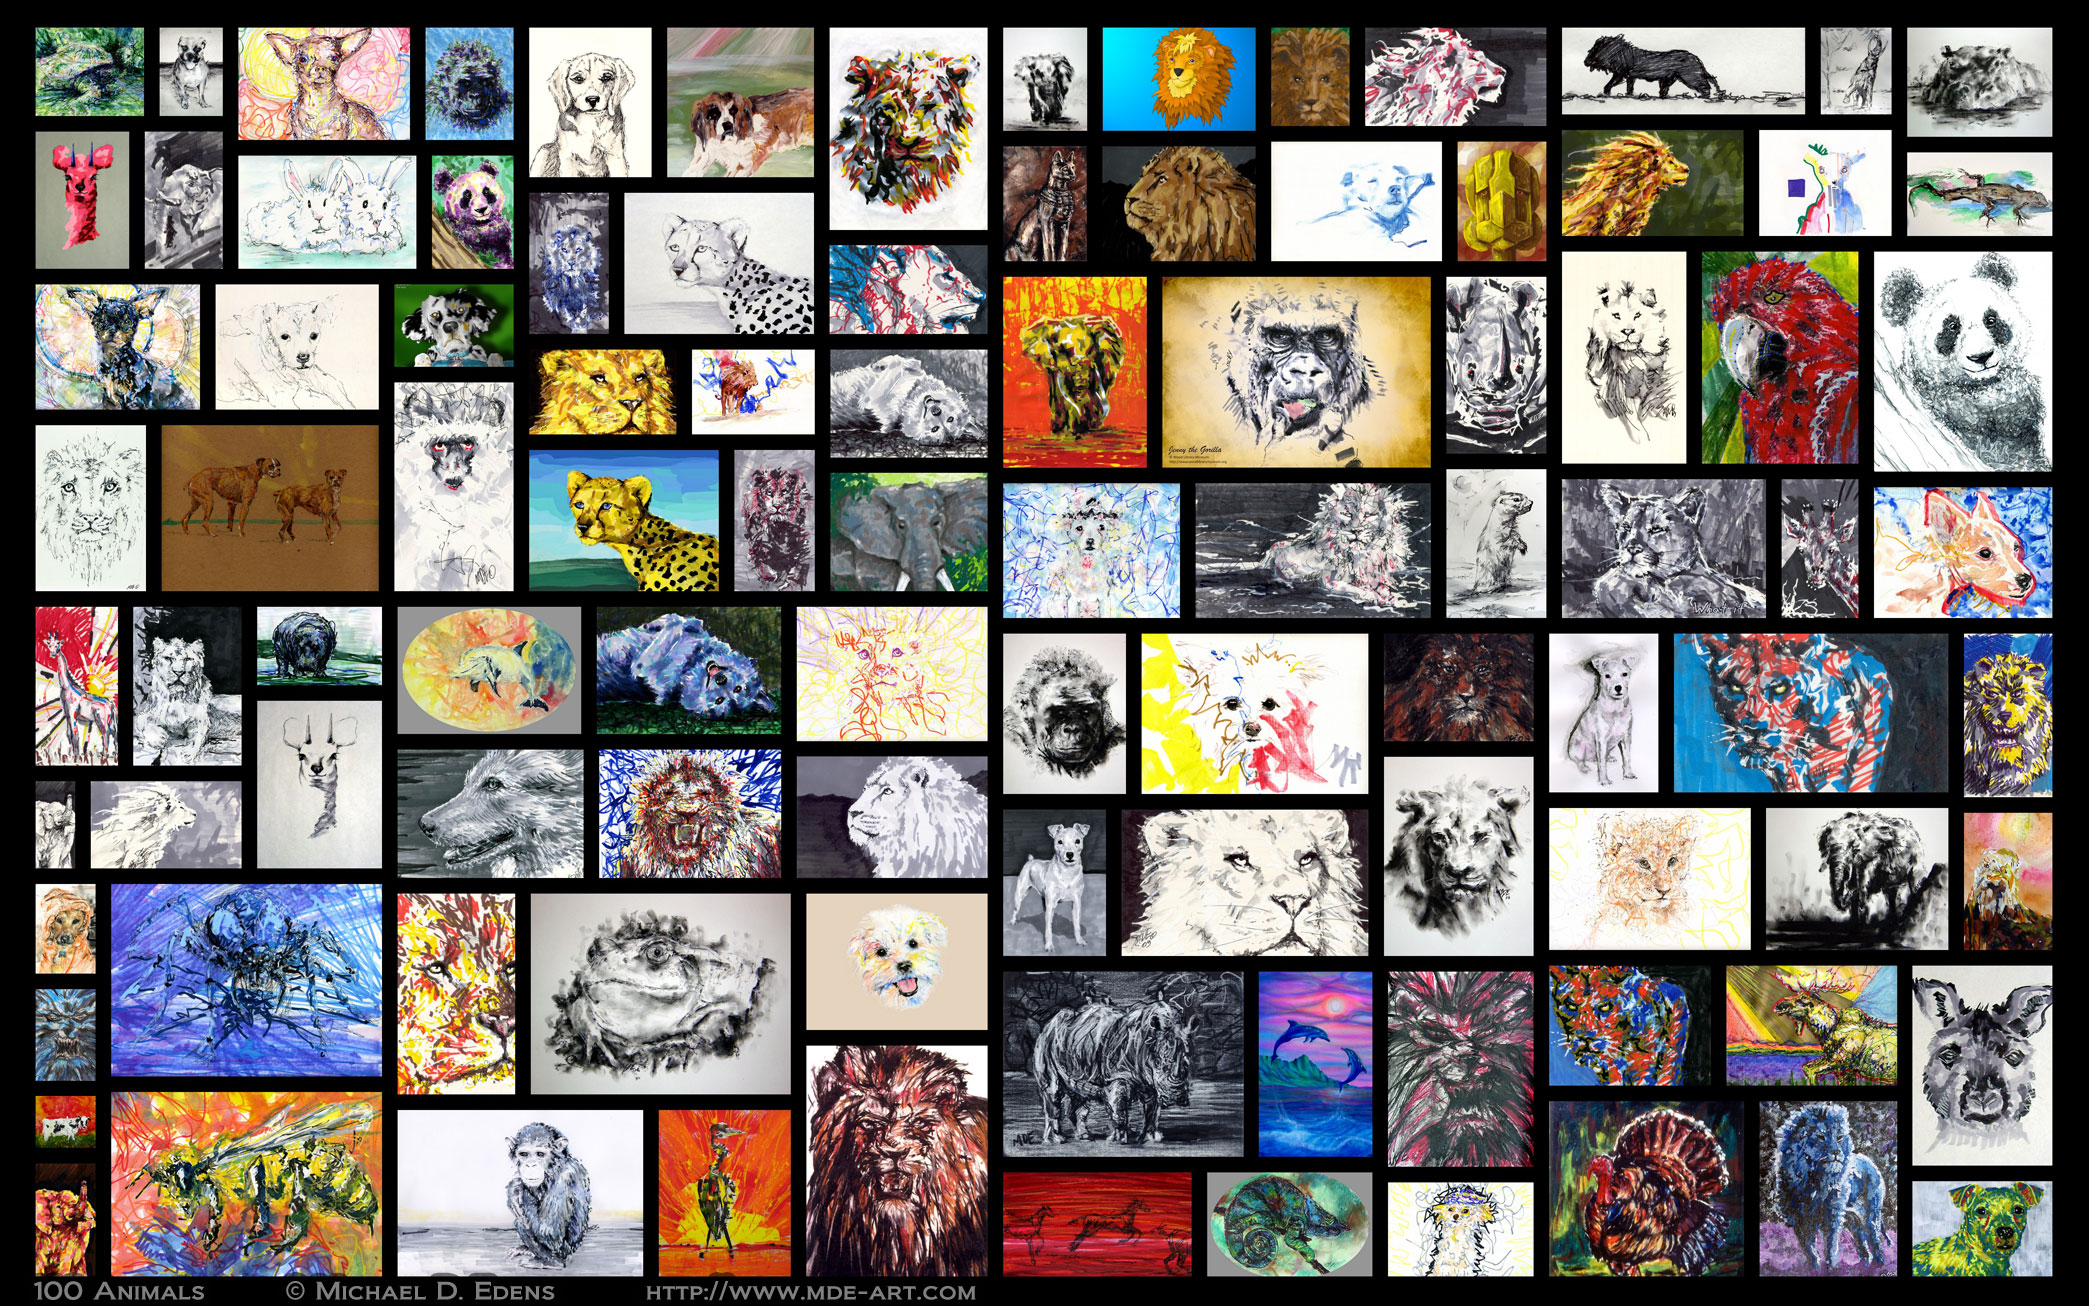 100 Animals – Collage of Artwork by Michael D. Edens